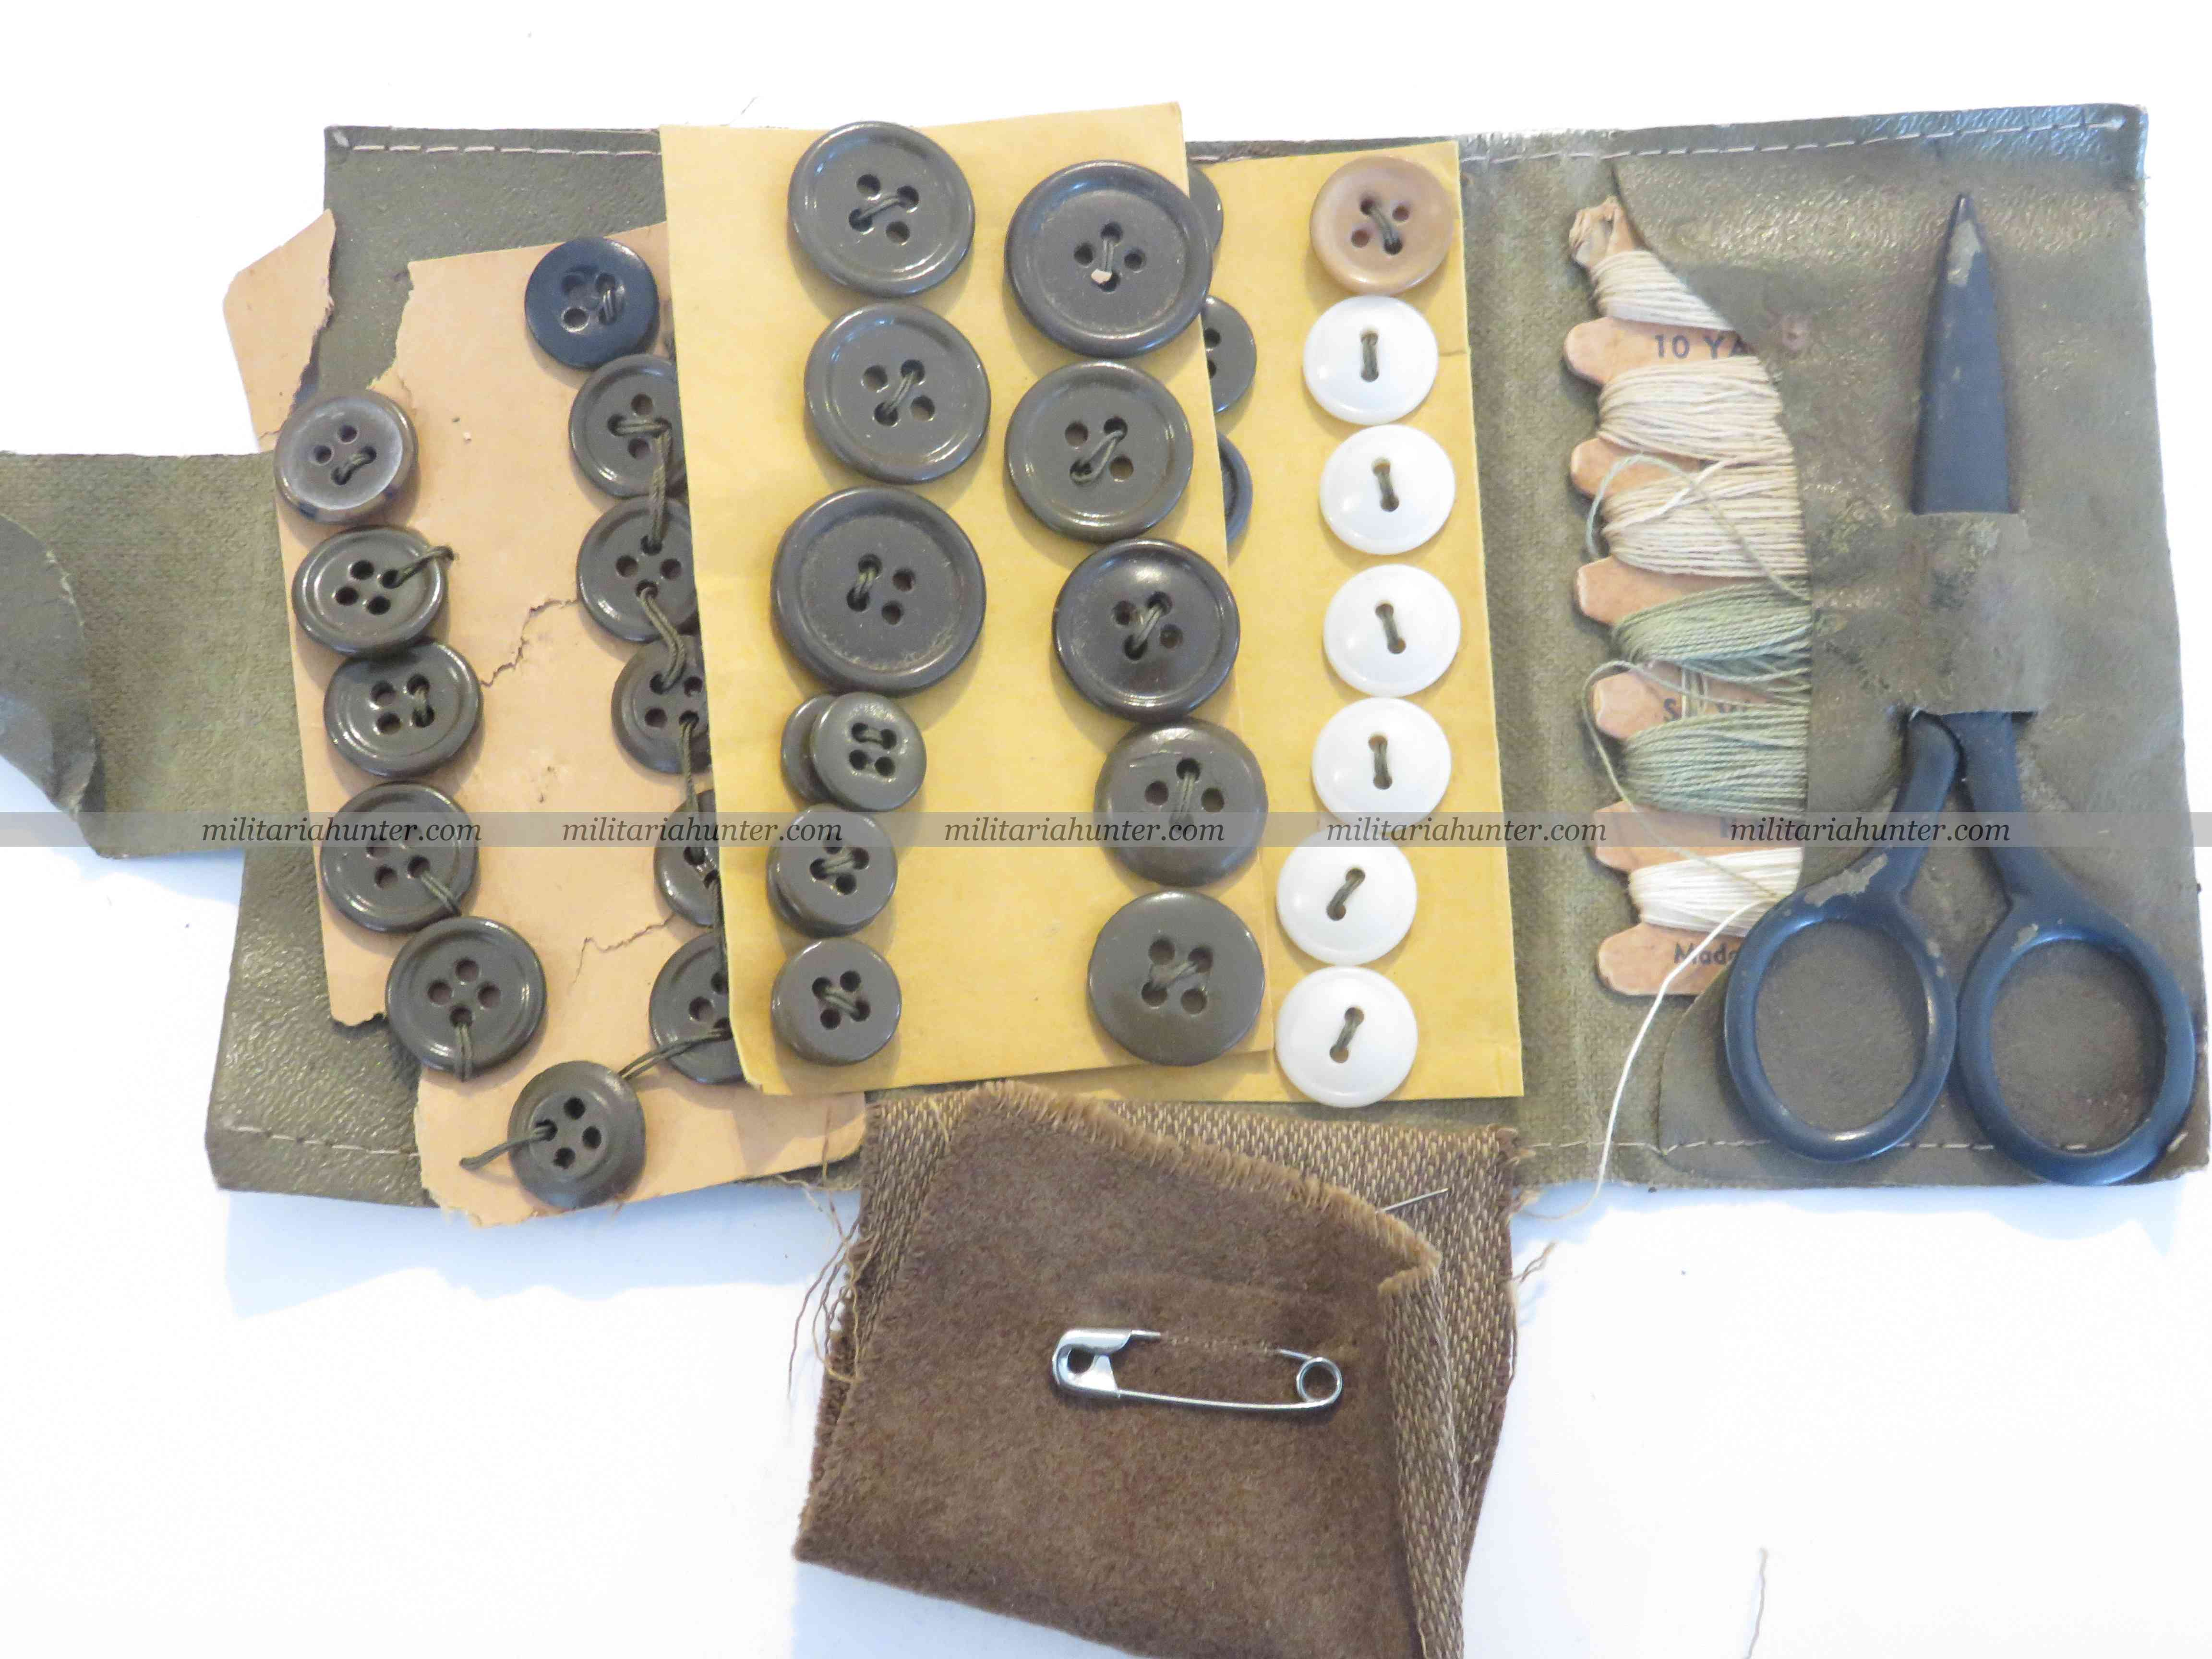 militaria : US WWII Sewing kit - kit de couture du GI